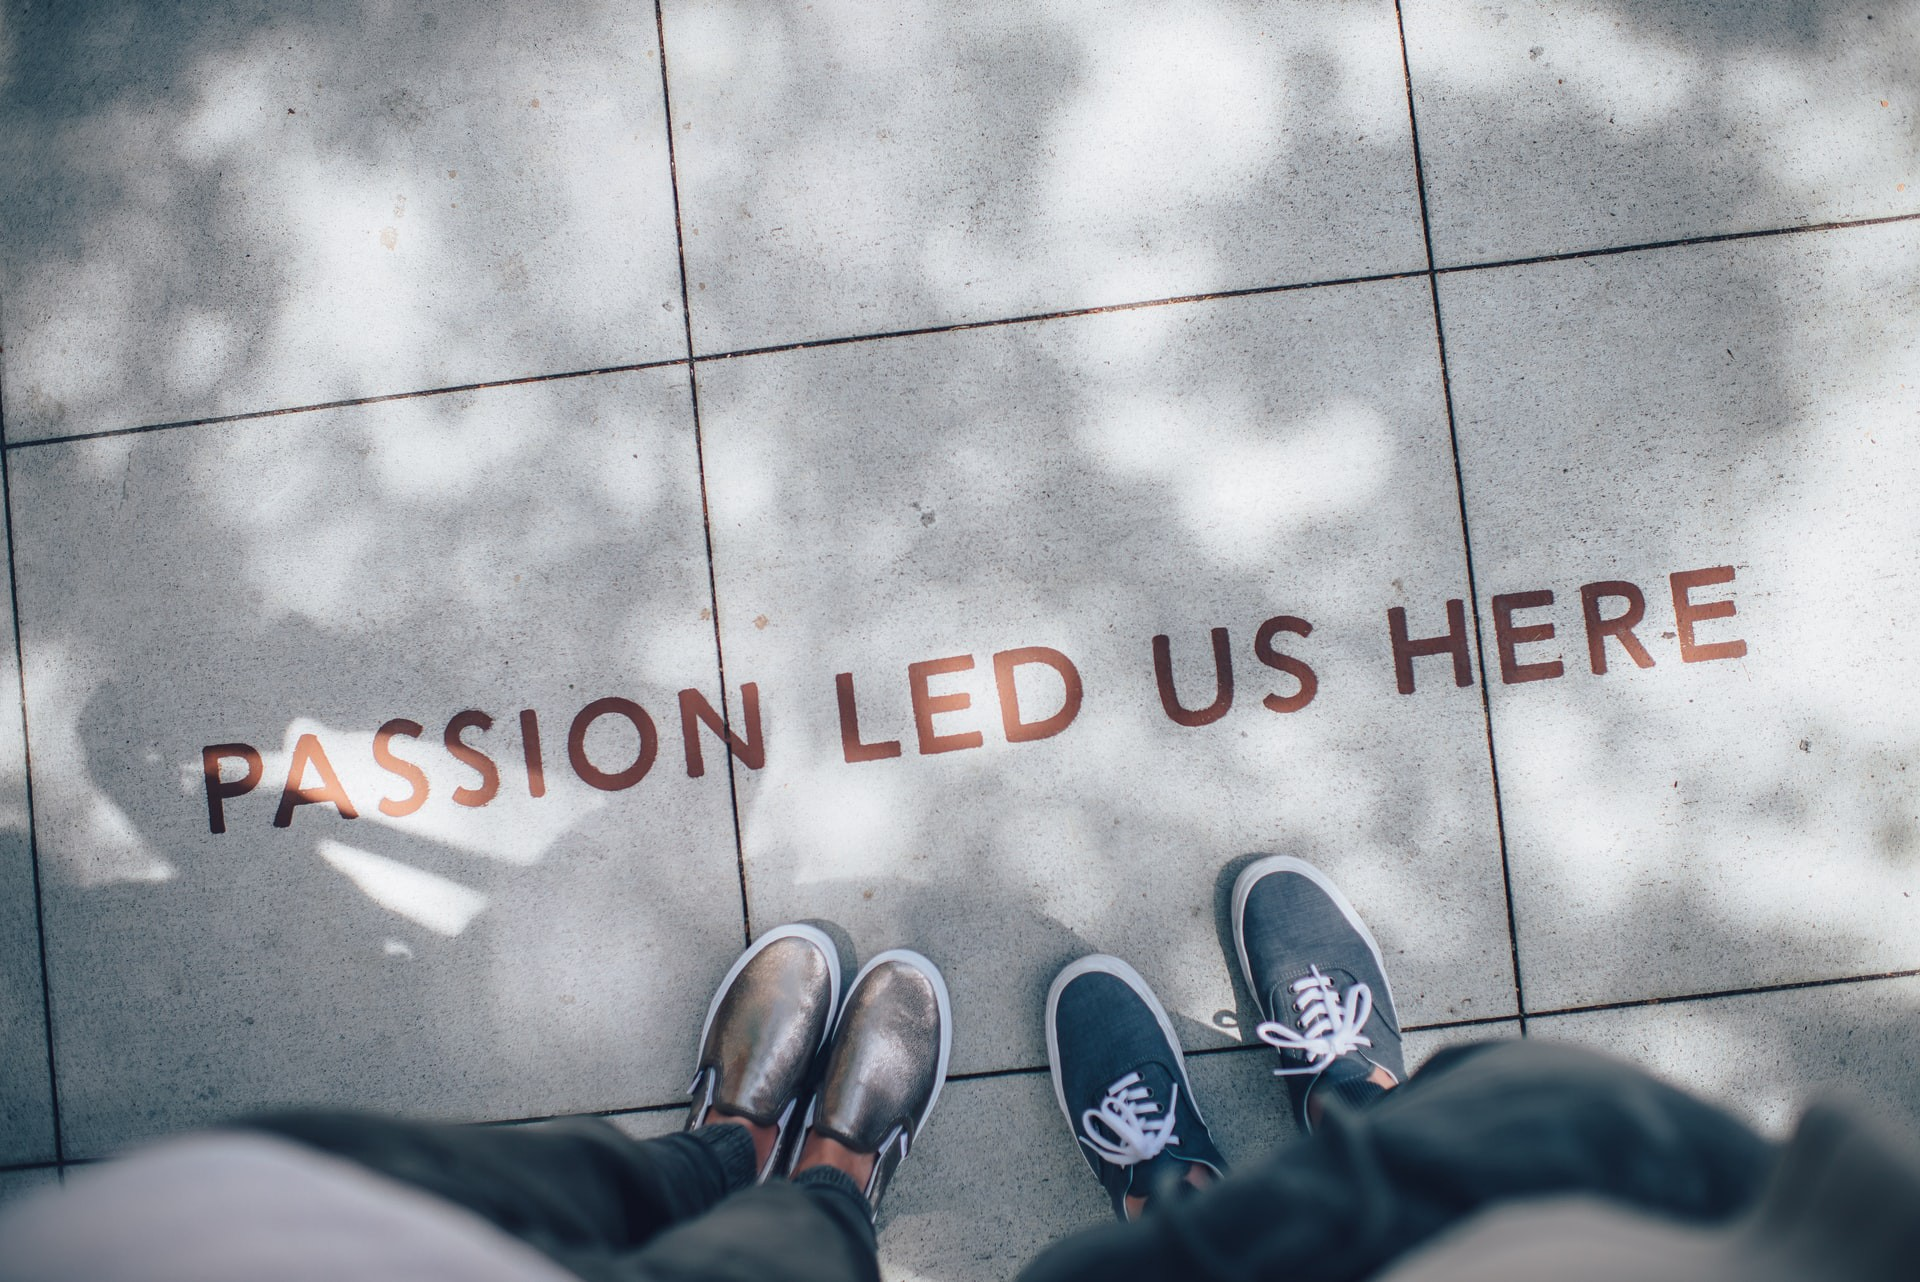 """Words on the pavement saying """"Passion led us here"""""""